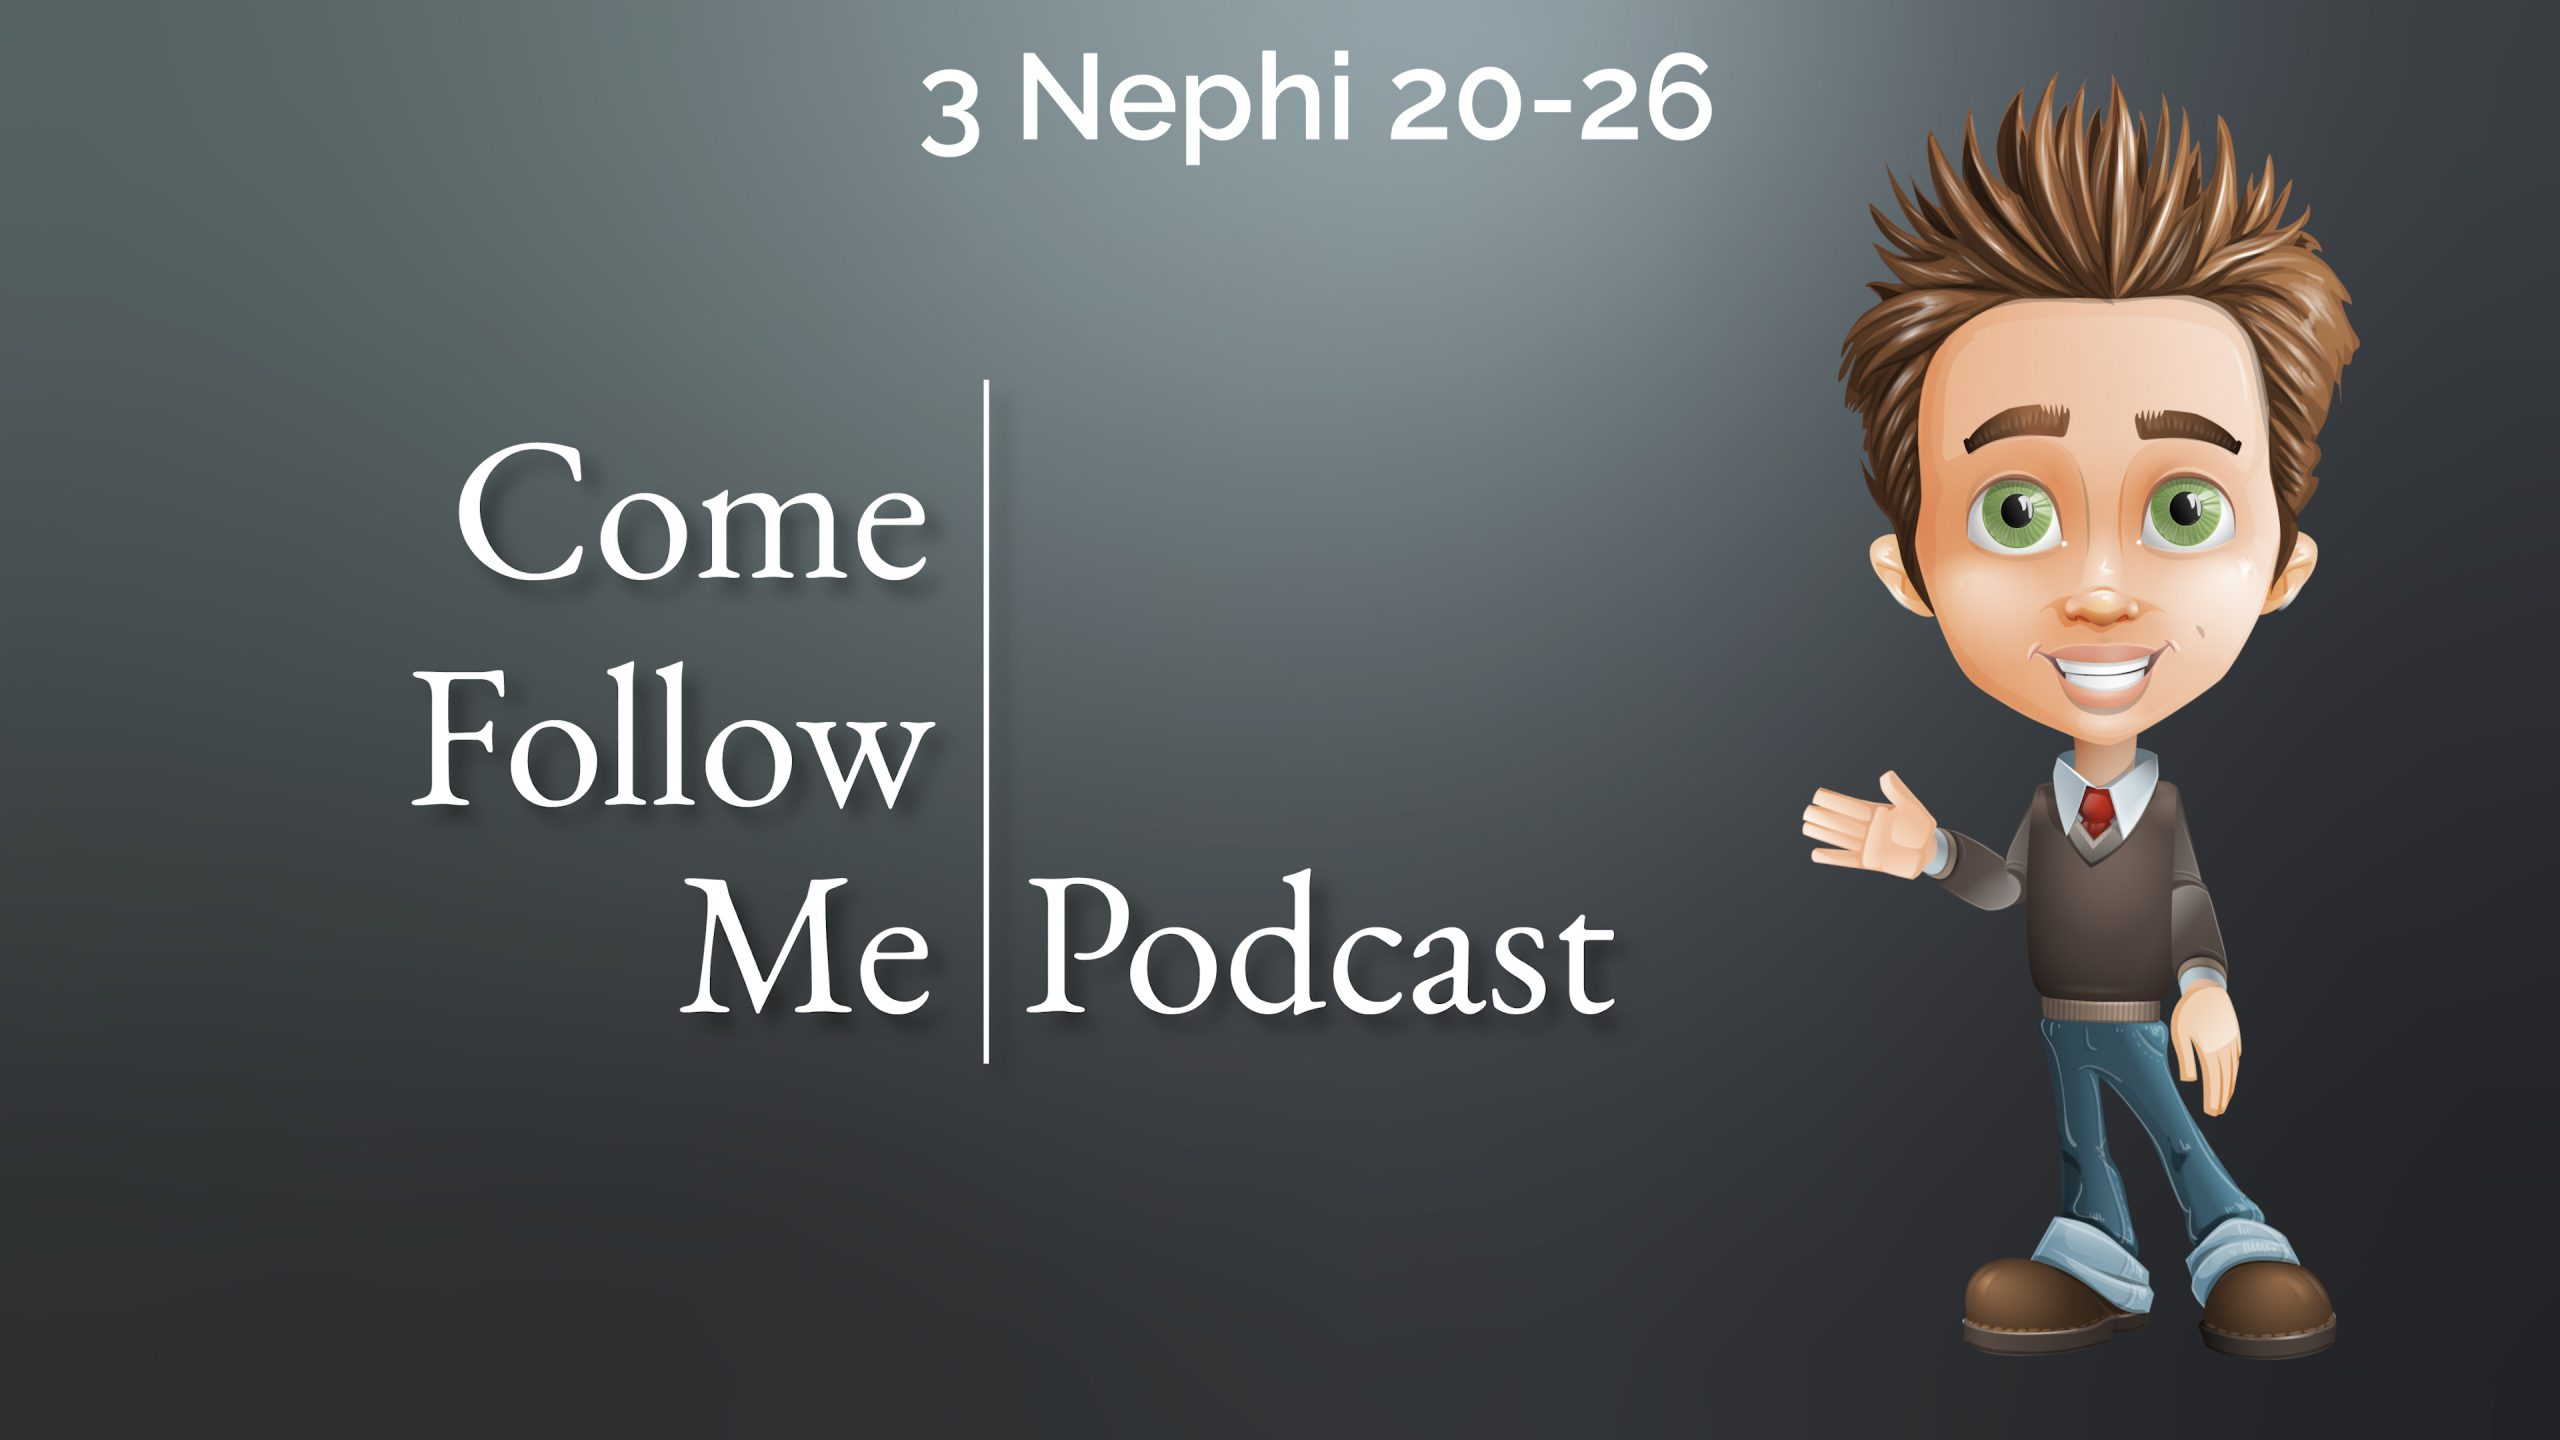 3 Nephi 20-26 | Come Follow Me Podcast